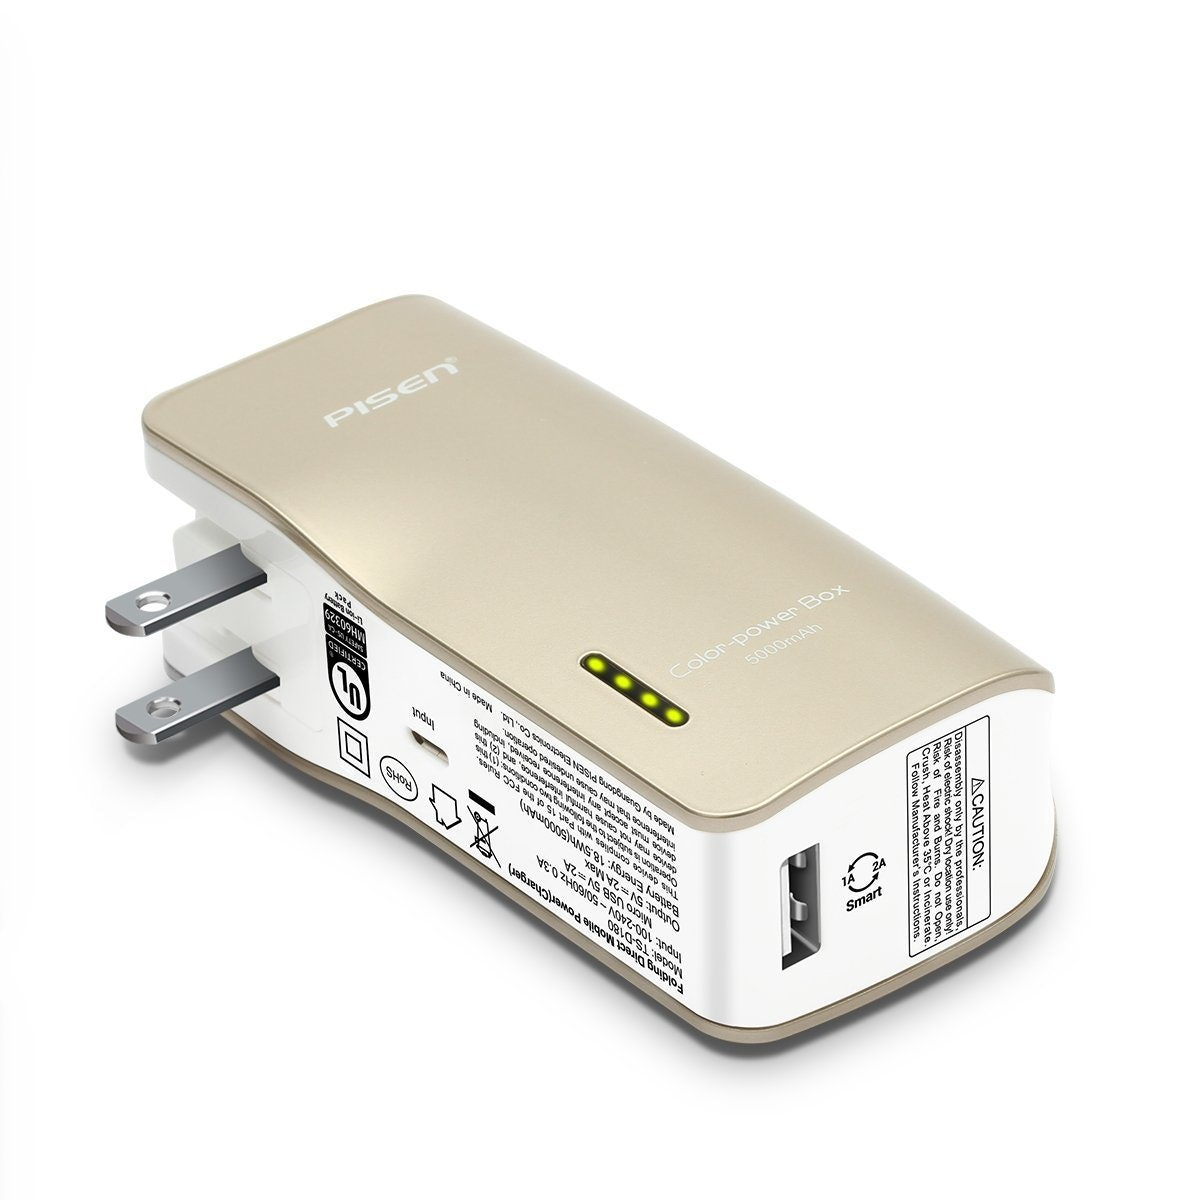 Pisen 2-in-1 Portable Charger